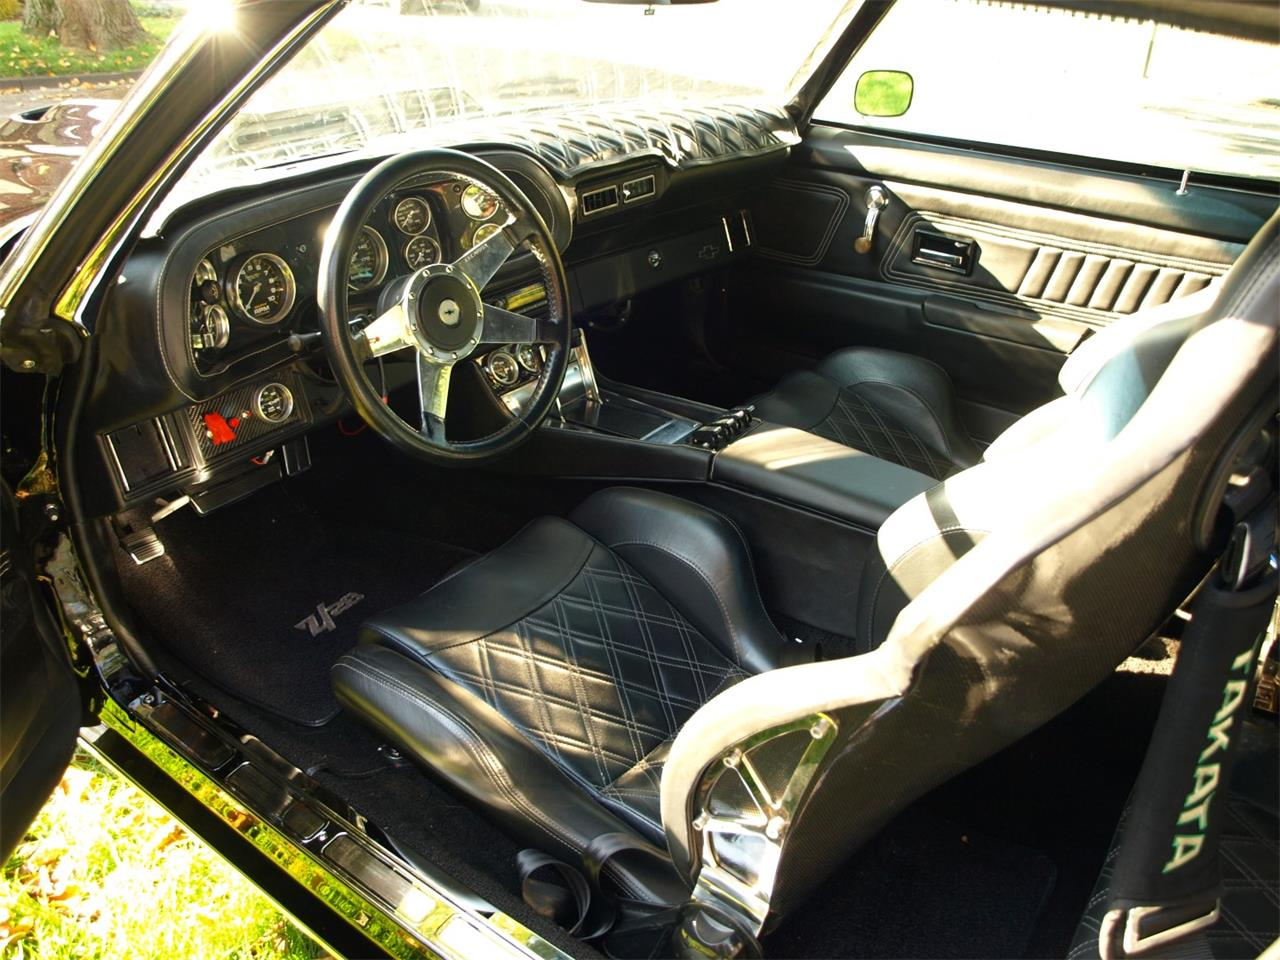 Large Picture of '71 Chevrolet Camaro RS Z28 located in Limburg - $145,000.00 Offered by a Private Seller - PD5X